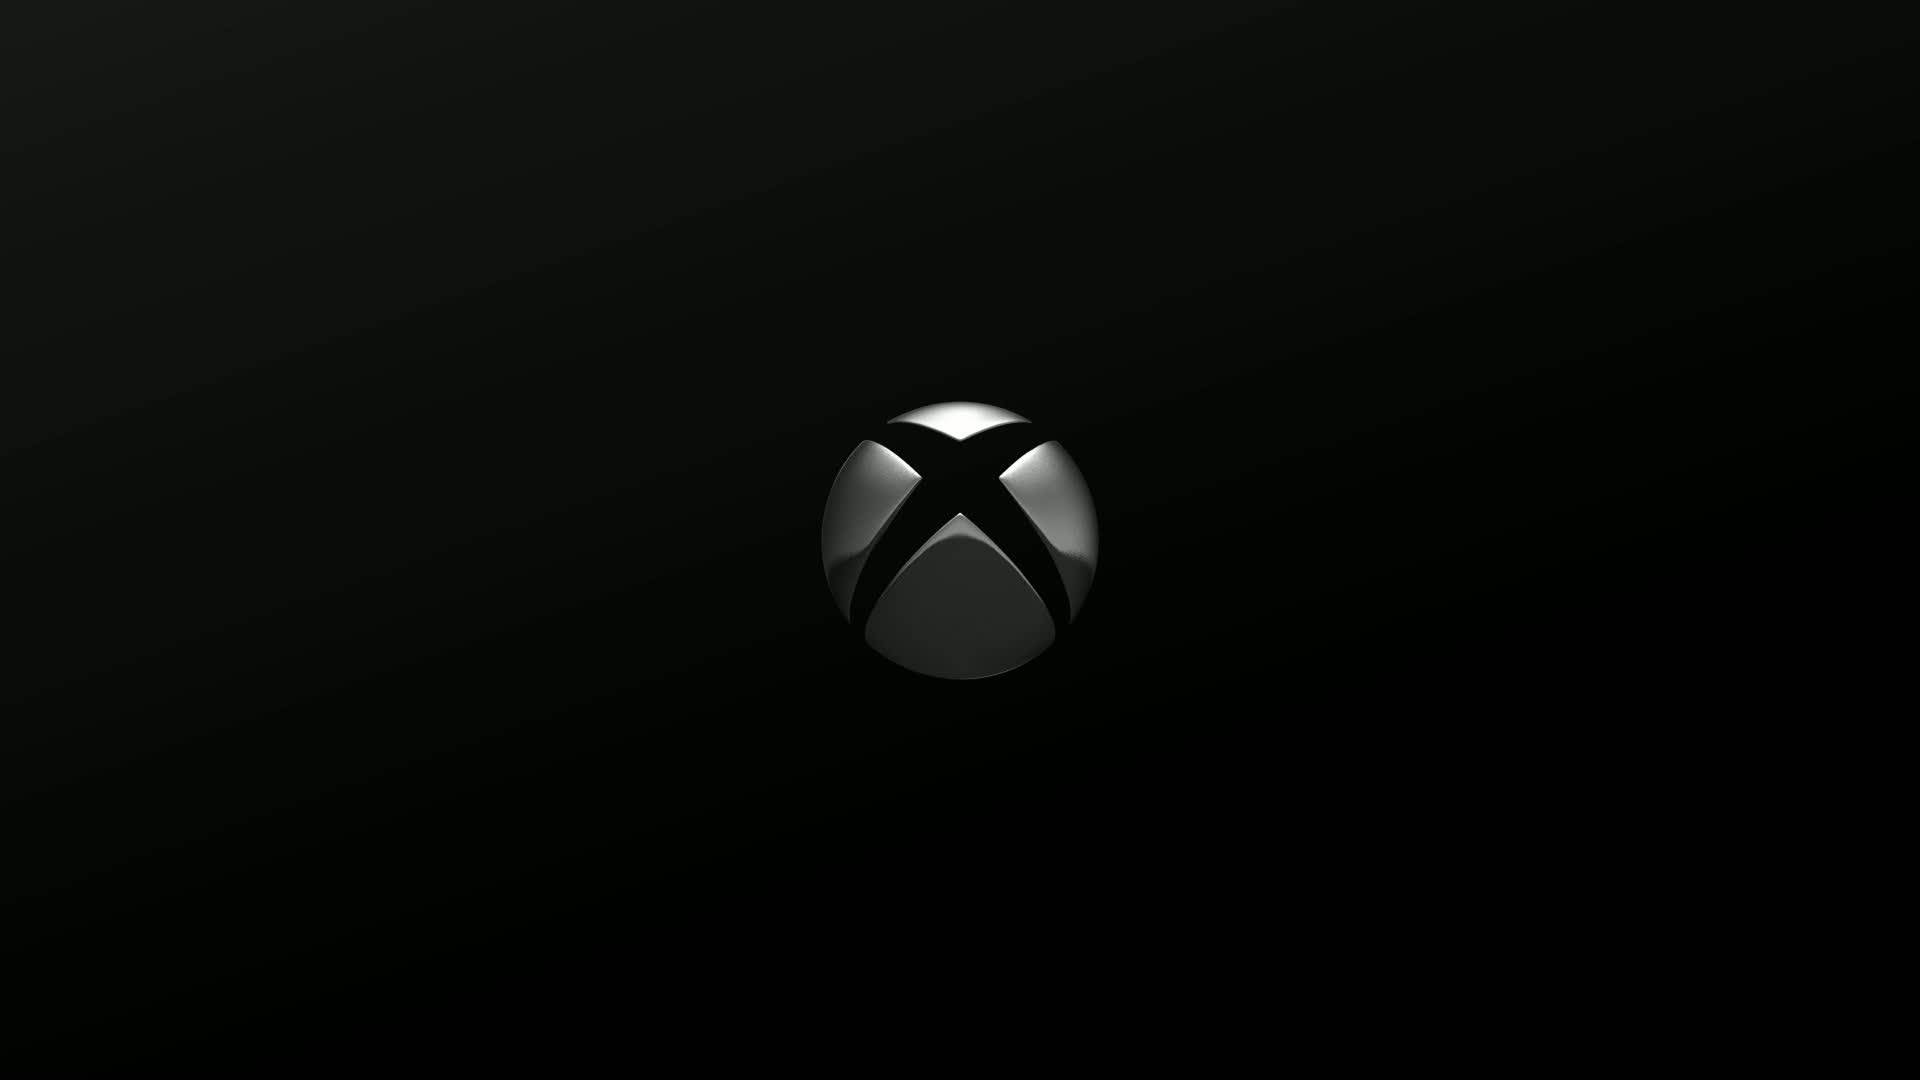 Xbox One Game Wallpaper Xbox One Console Gaming